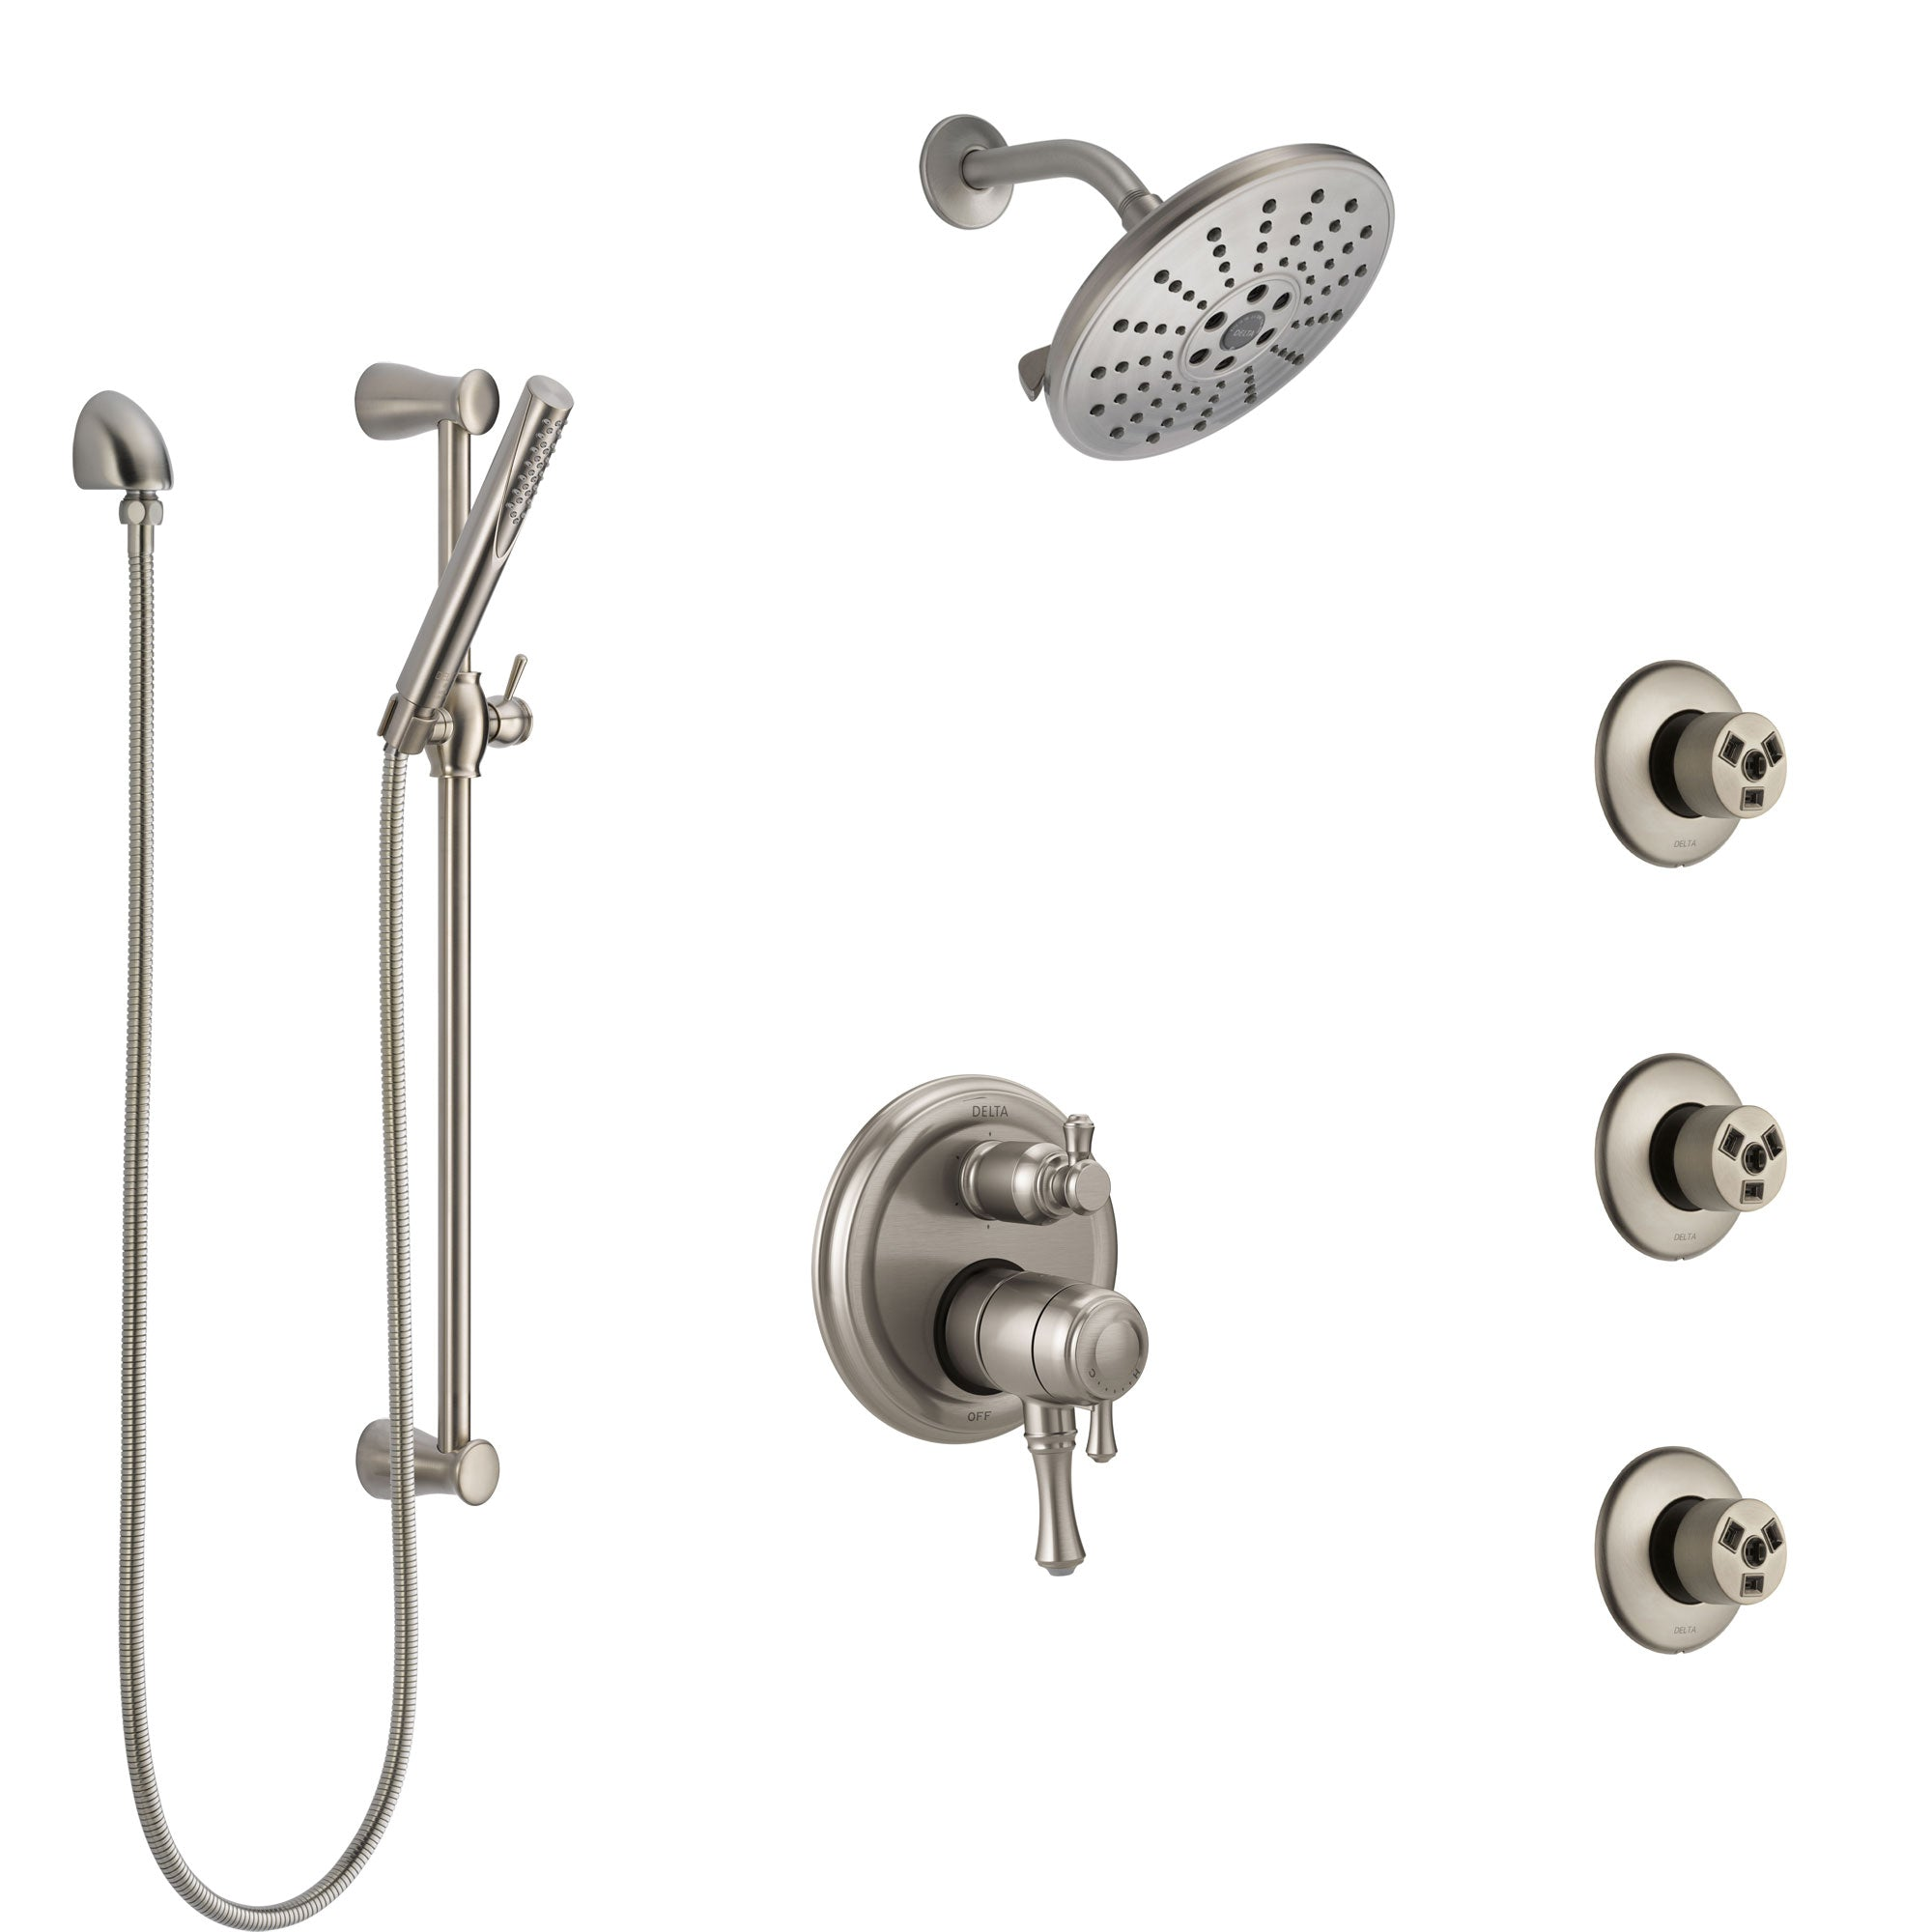 Delta Cassidy Dual Control Handle Stainless Steel Finish Shower System, Integrated Diverter, Showerhead, 3 Body Sprays, and Hand Shower SS27997SS1